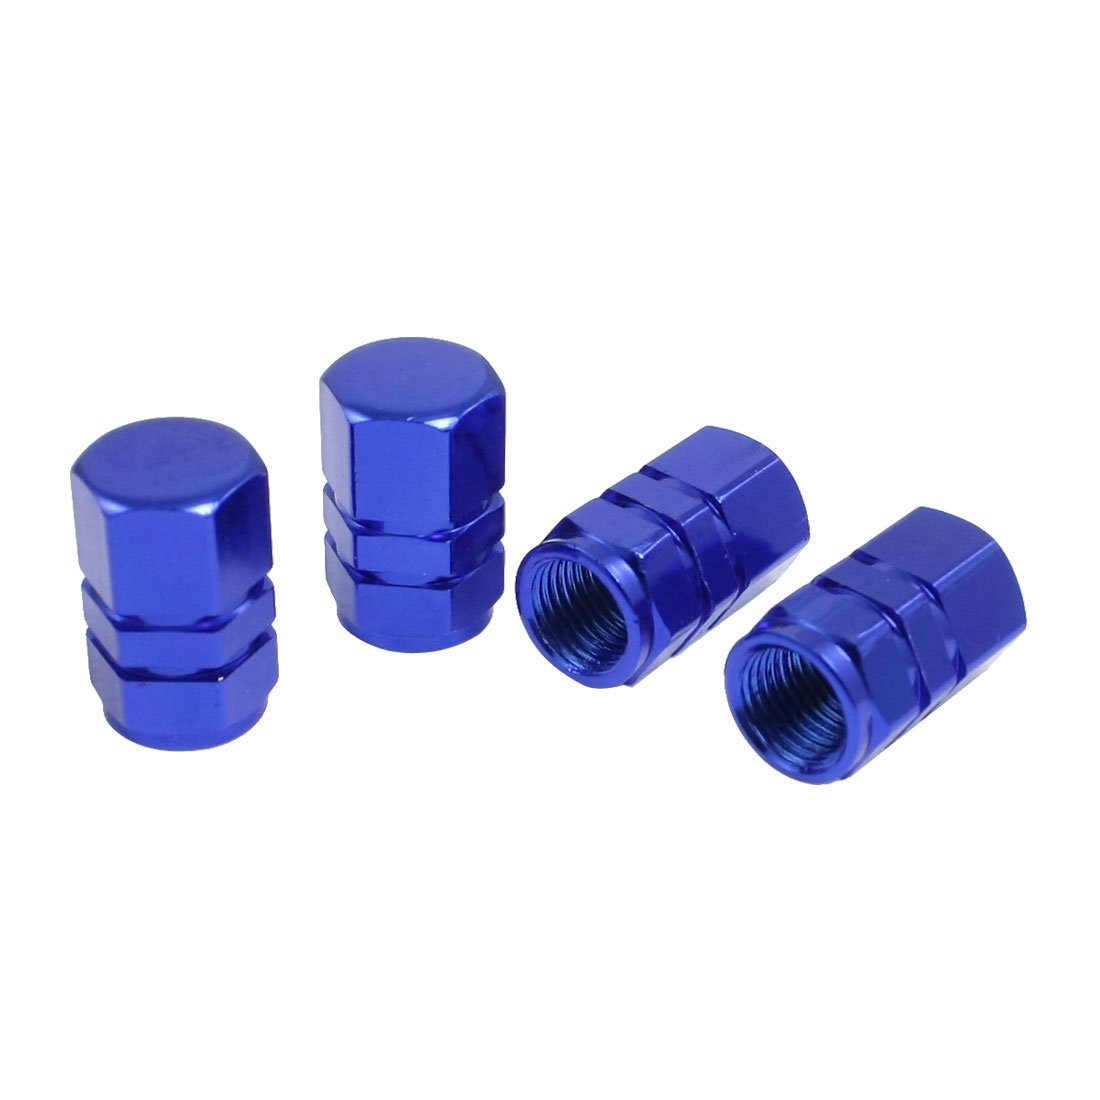 Motorcycle Truck Car Tire Tyre Wheel Valve Stem Dust Caps Royal Blue 4 Pcs